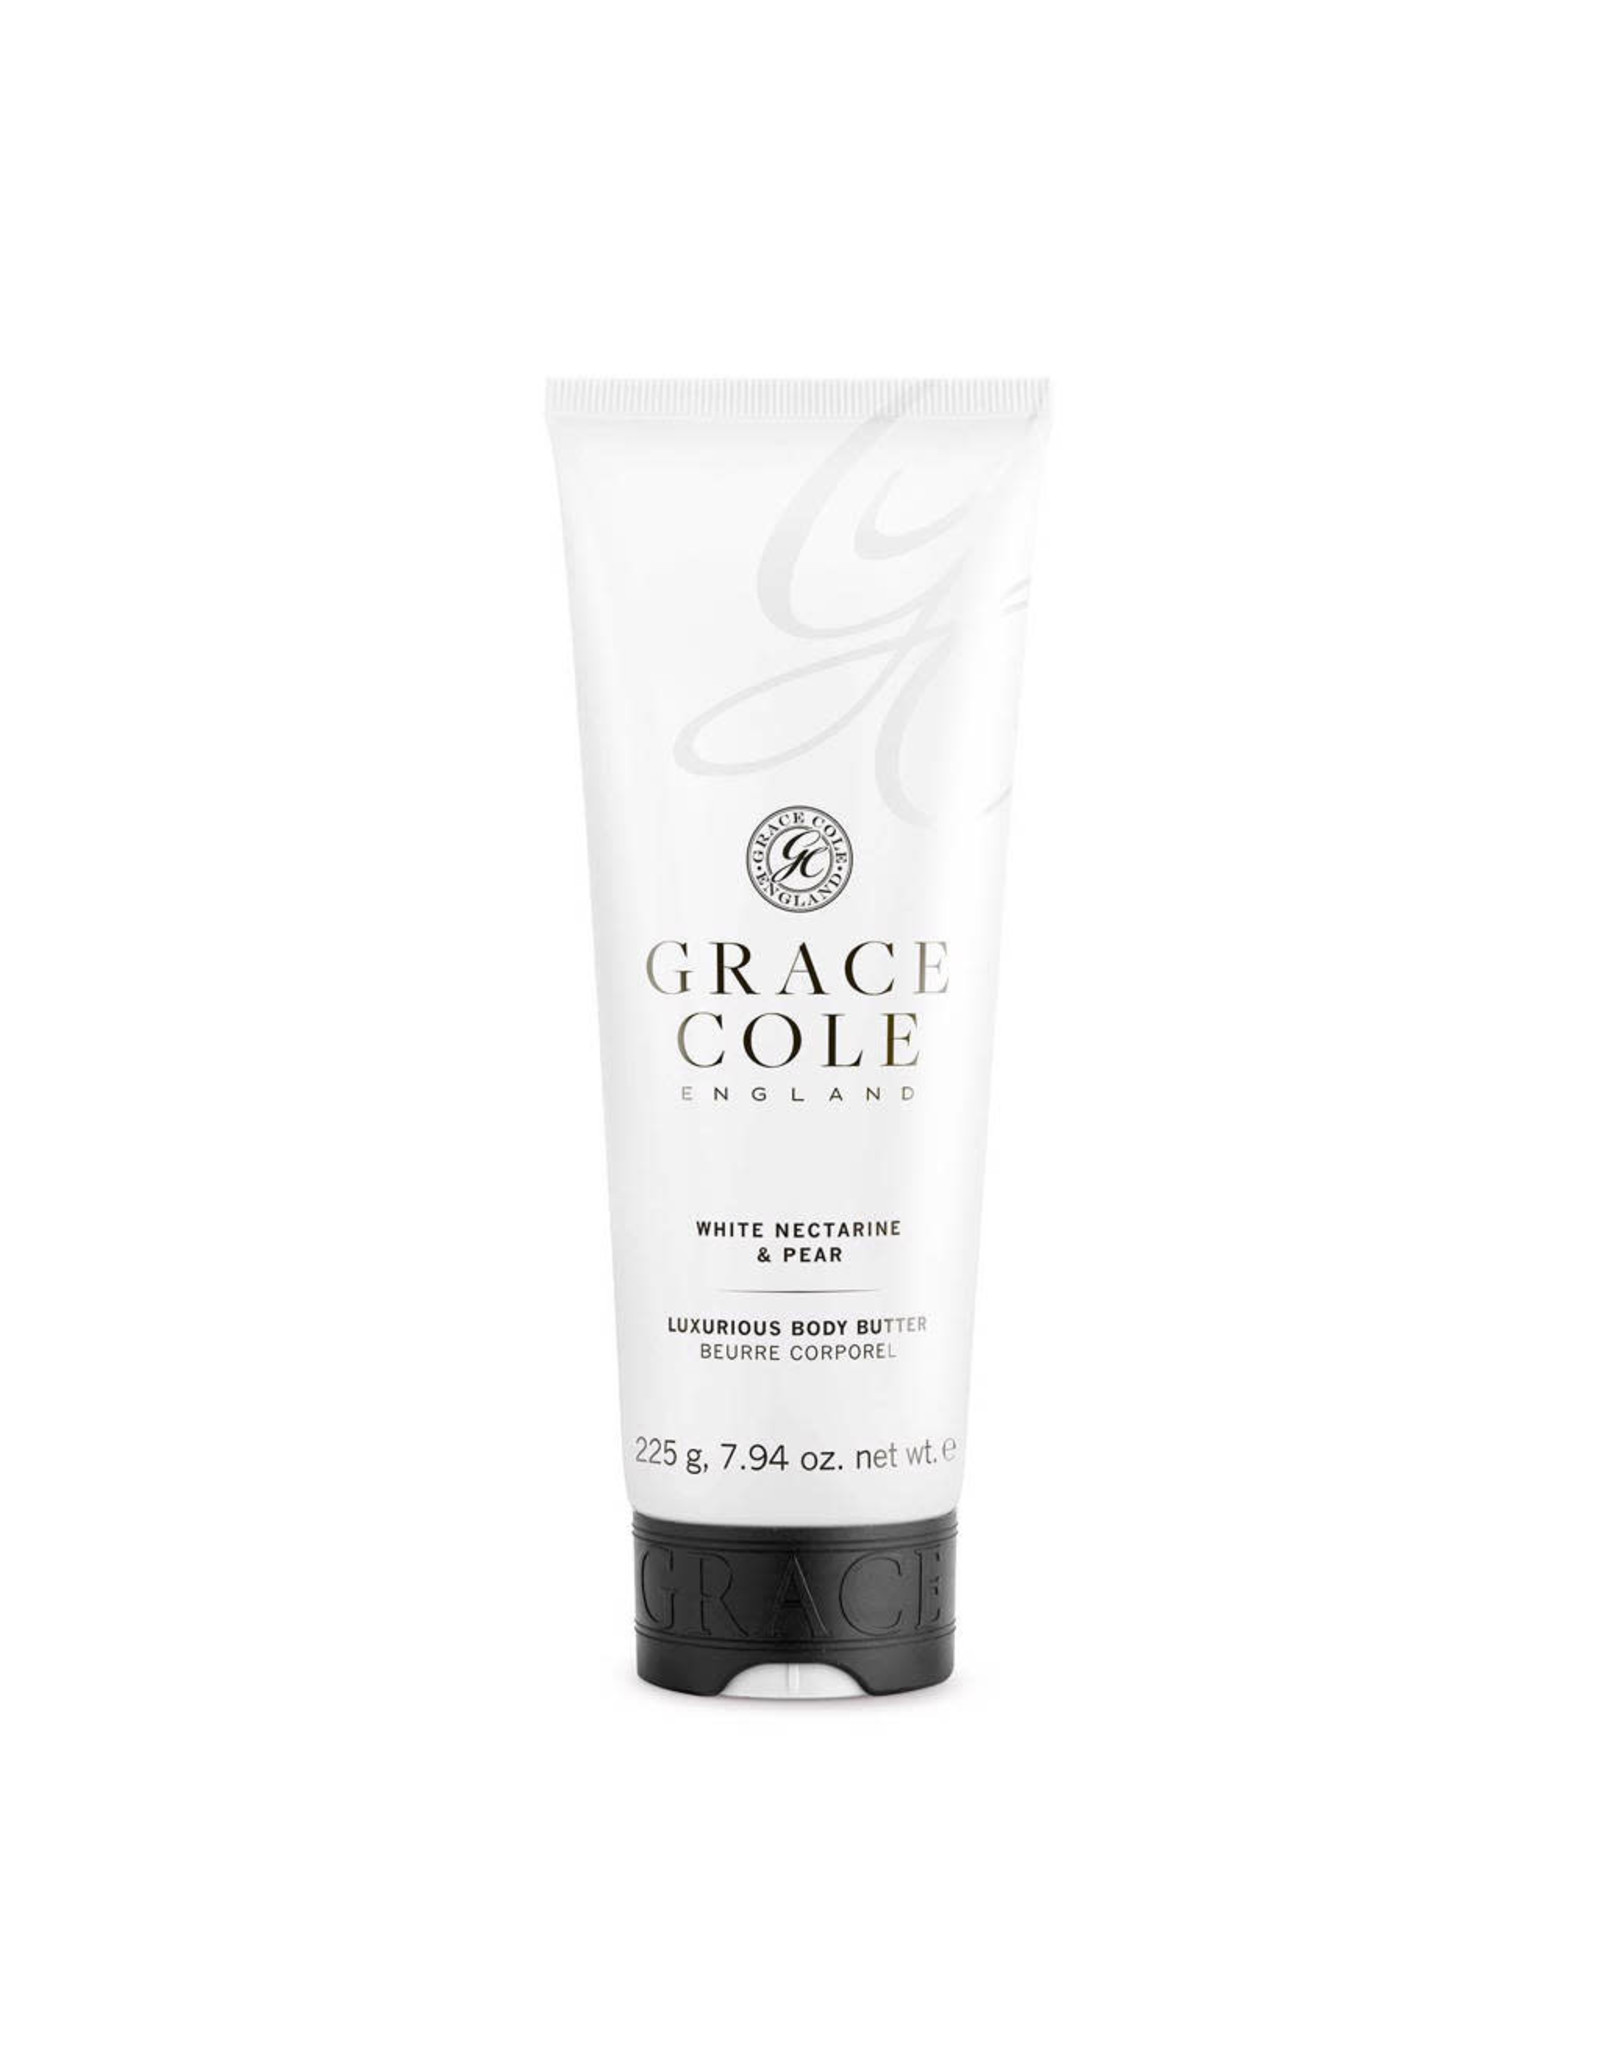 Grace Cole Body Butter White Nectarine & Pear